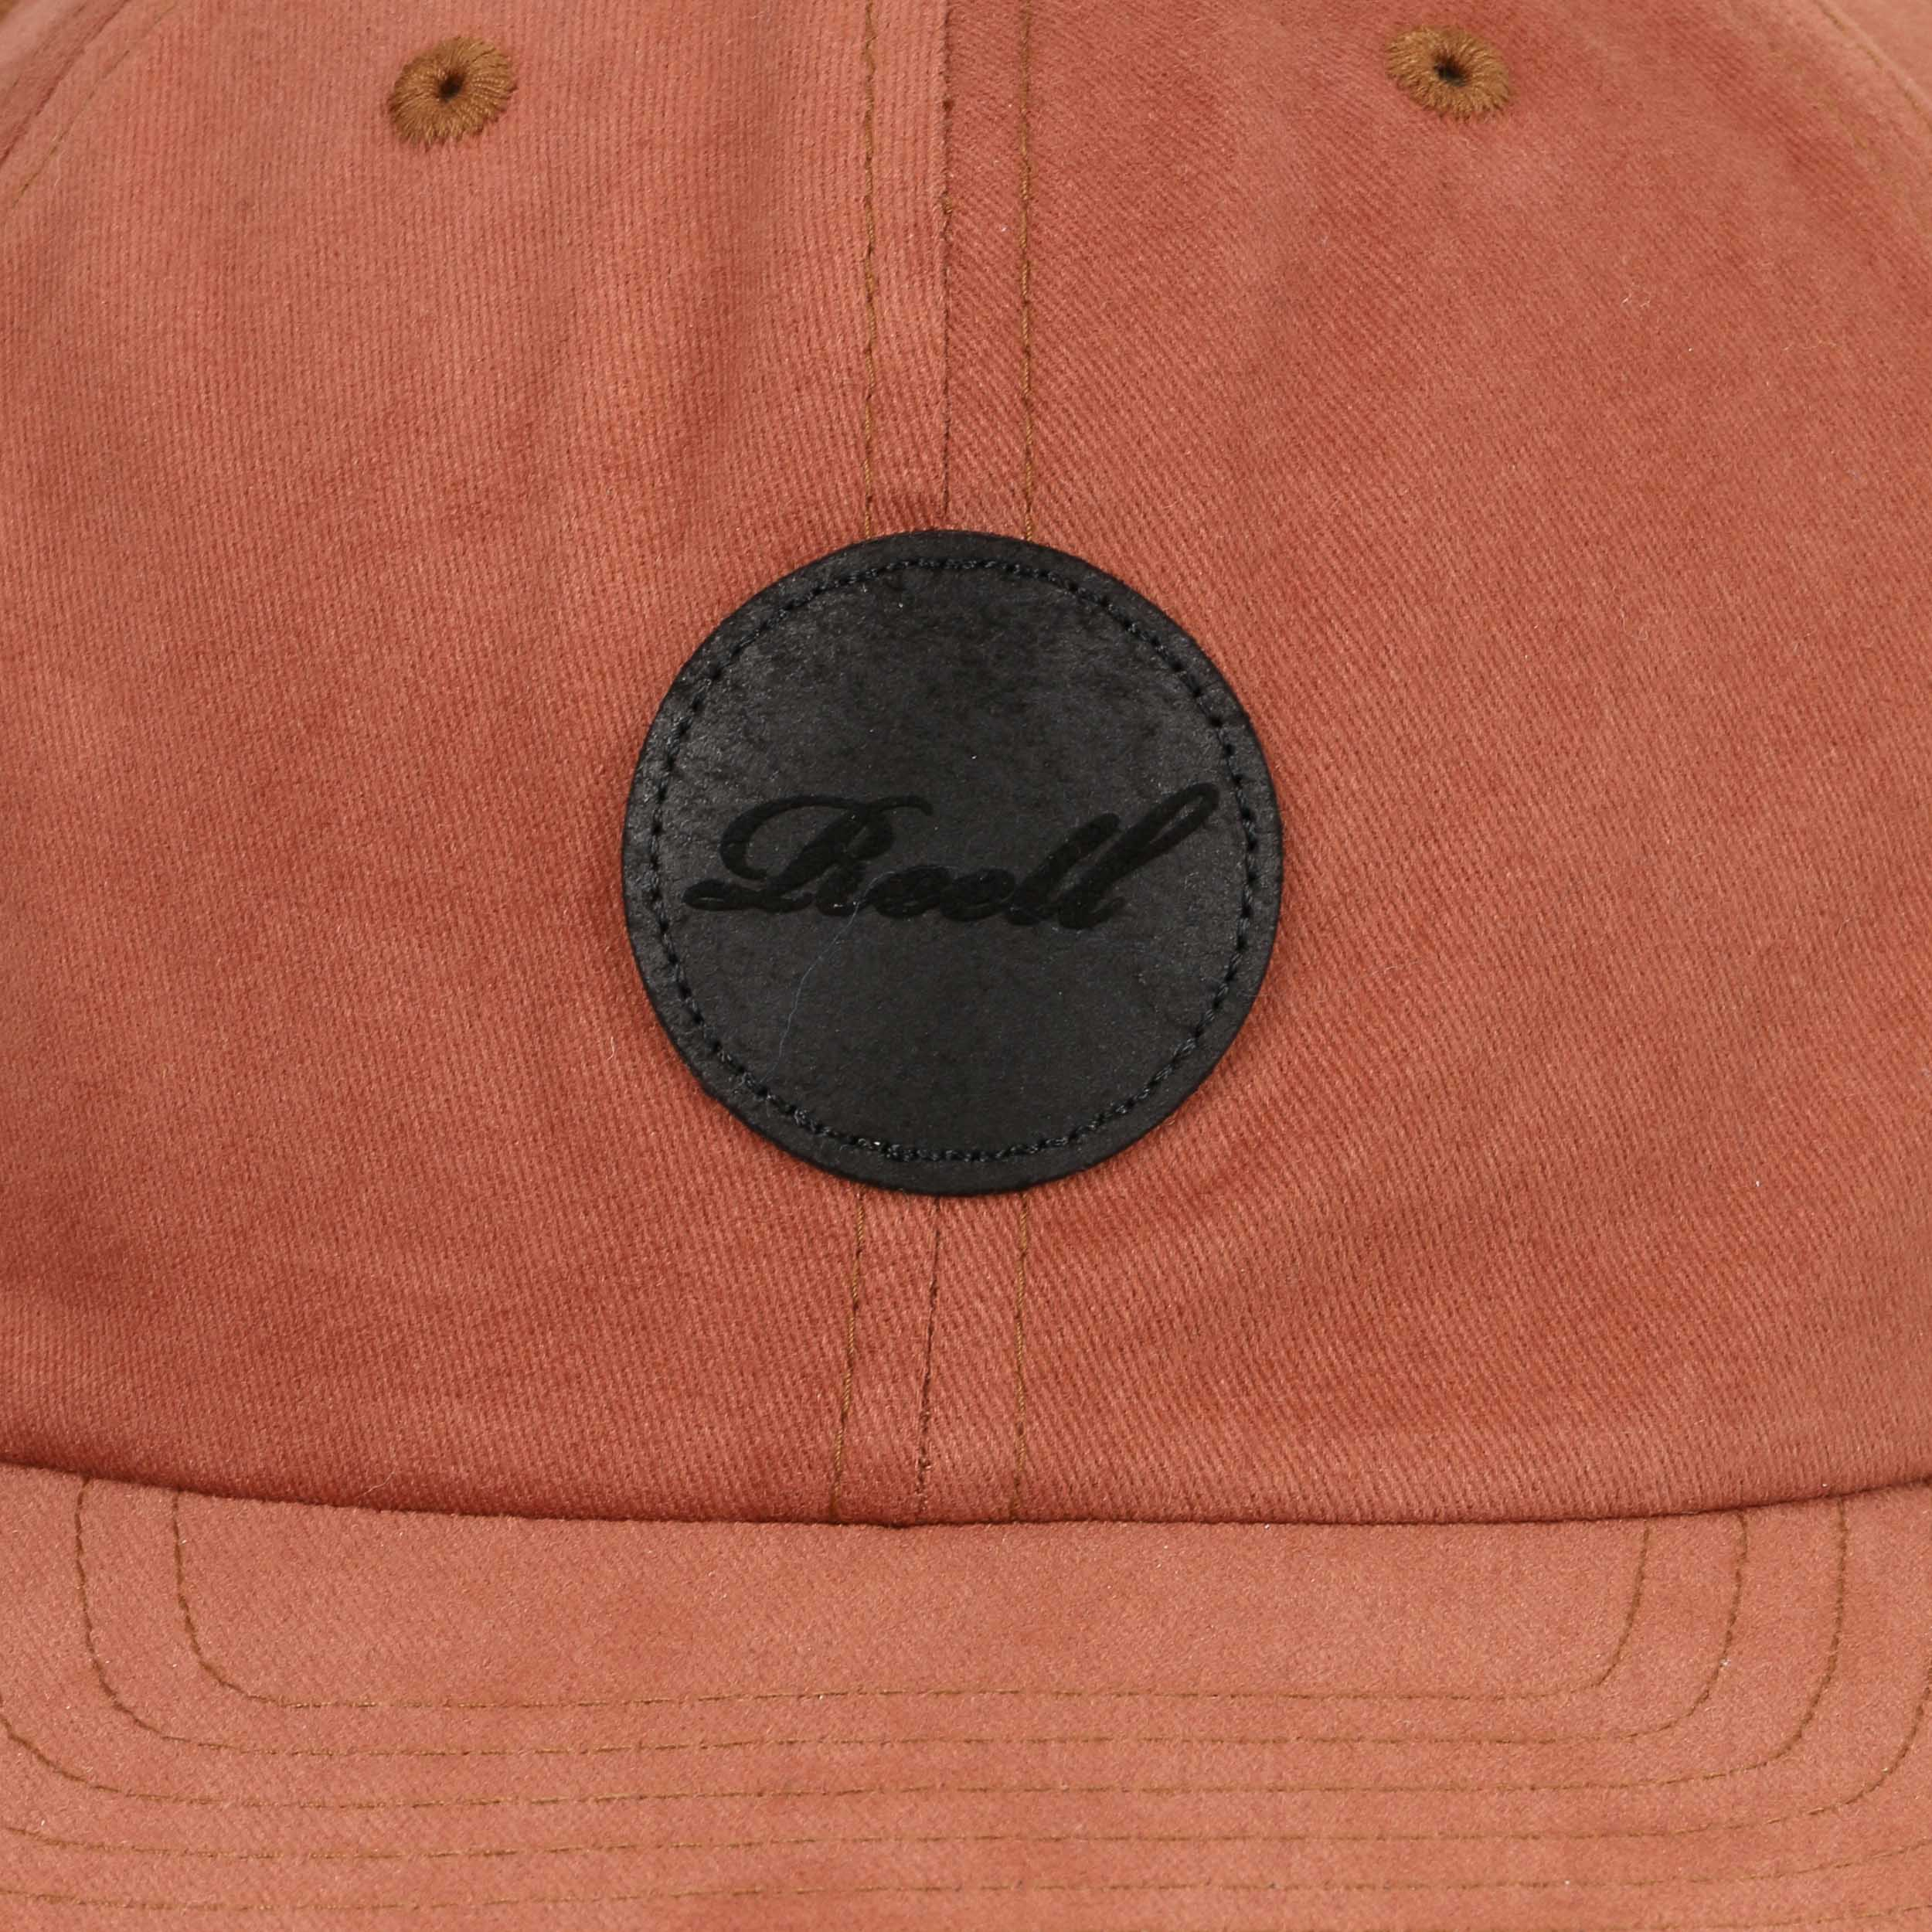 c632f327abed7 ... Flat 6 Panel Strapback Cap by Reell - oldrose 4 ...